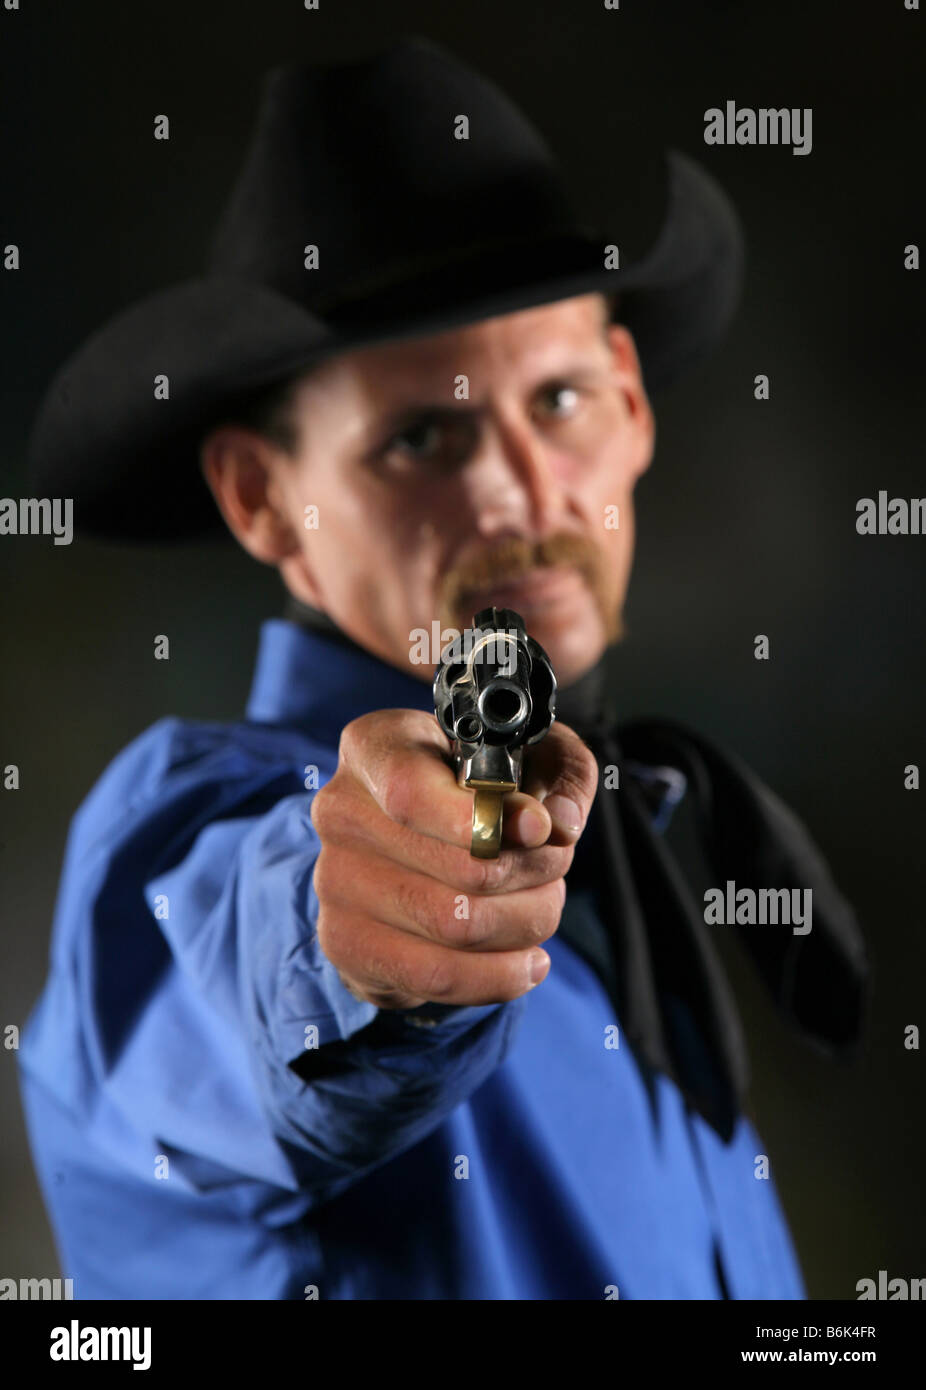 menacing cowboy aiming revolver gun at camera - Stock Image